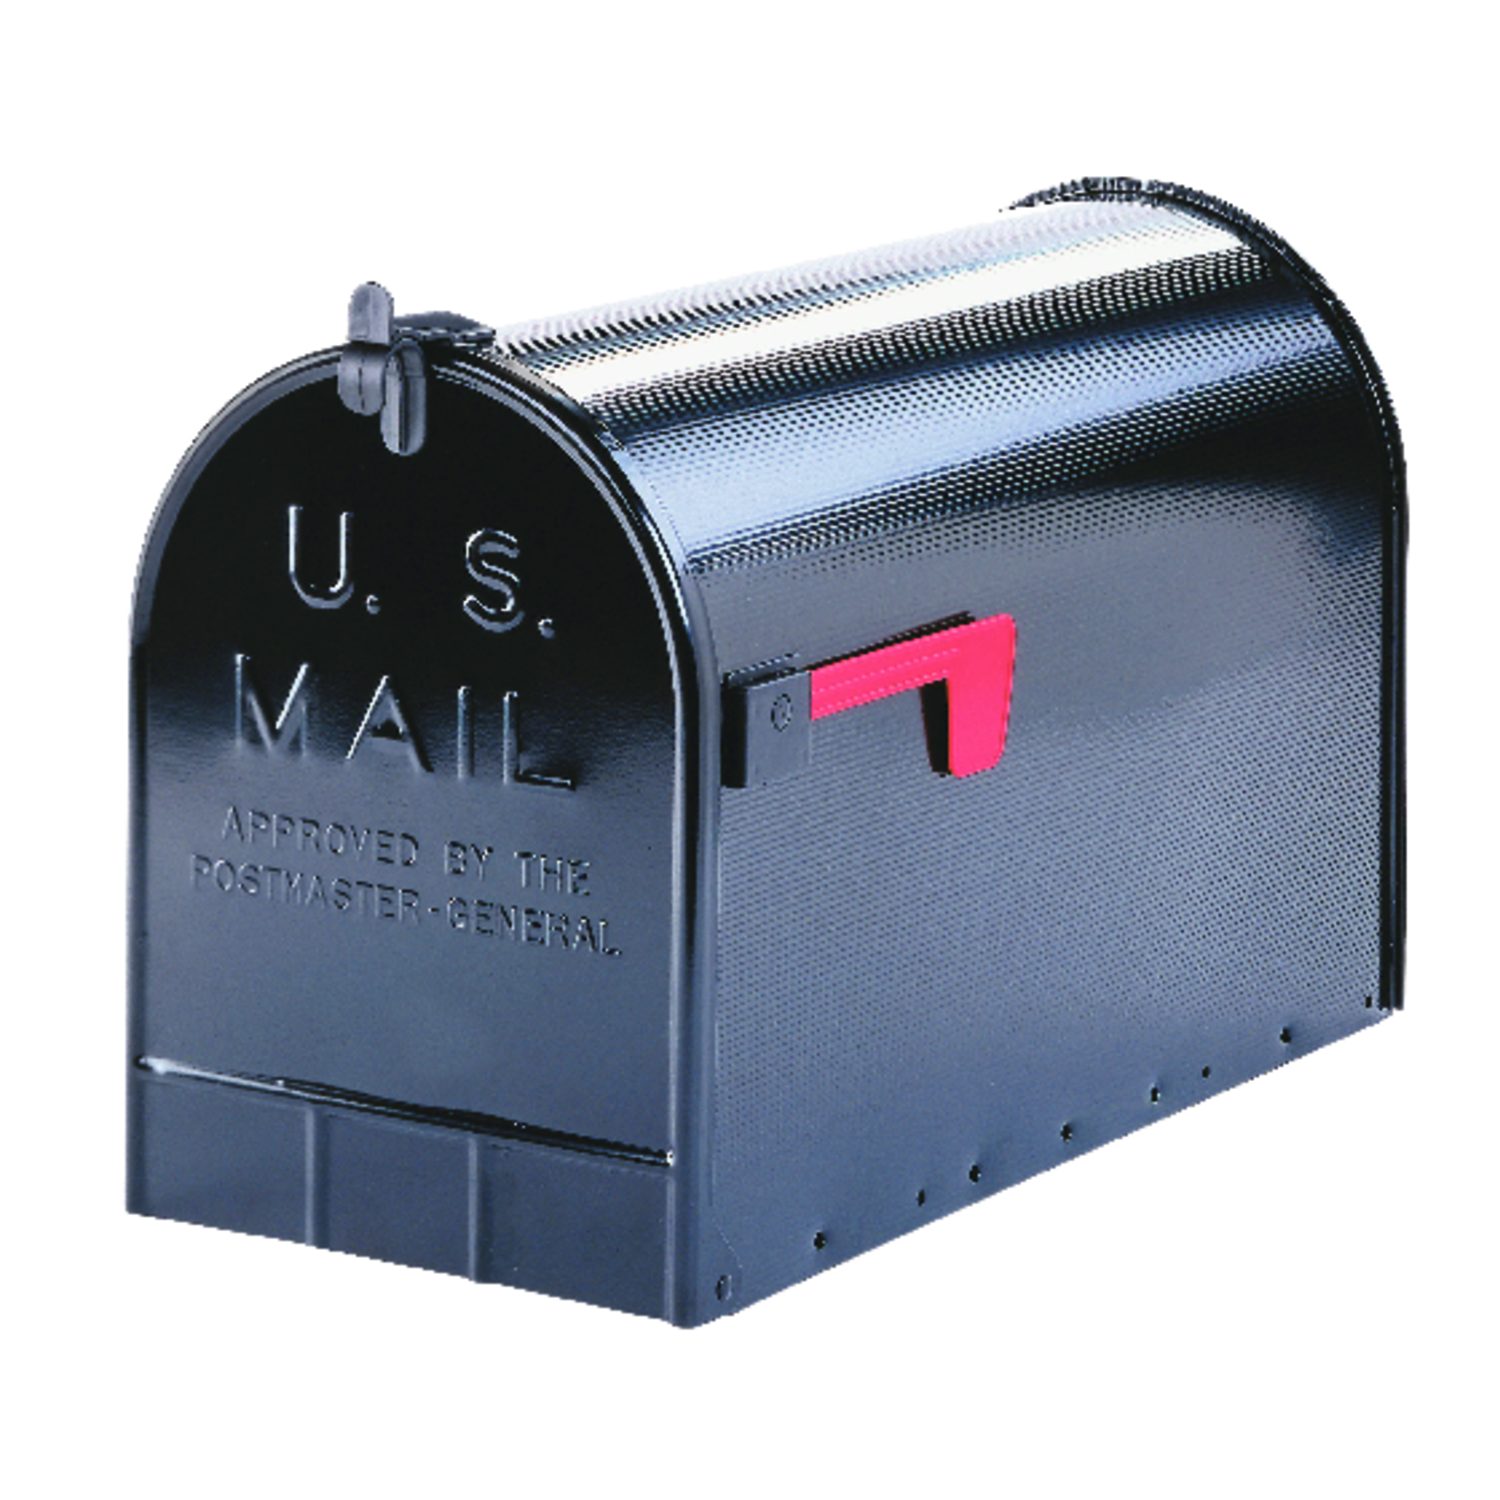 incredible Ace Hardware Mailbox Post Part - 7: Gibraltar Jumbo Galvanized Steel Post Mounted Black Mailbox 15 in. H x 11-1